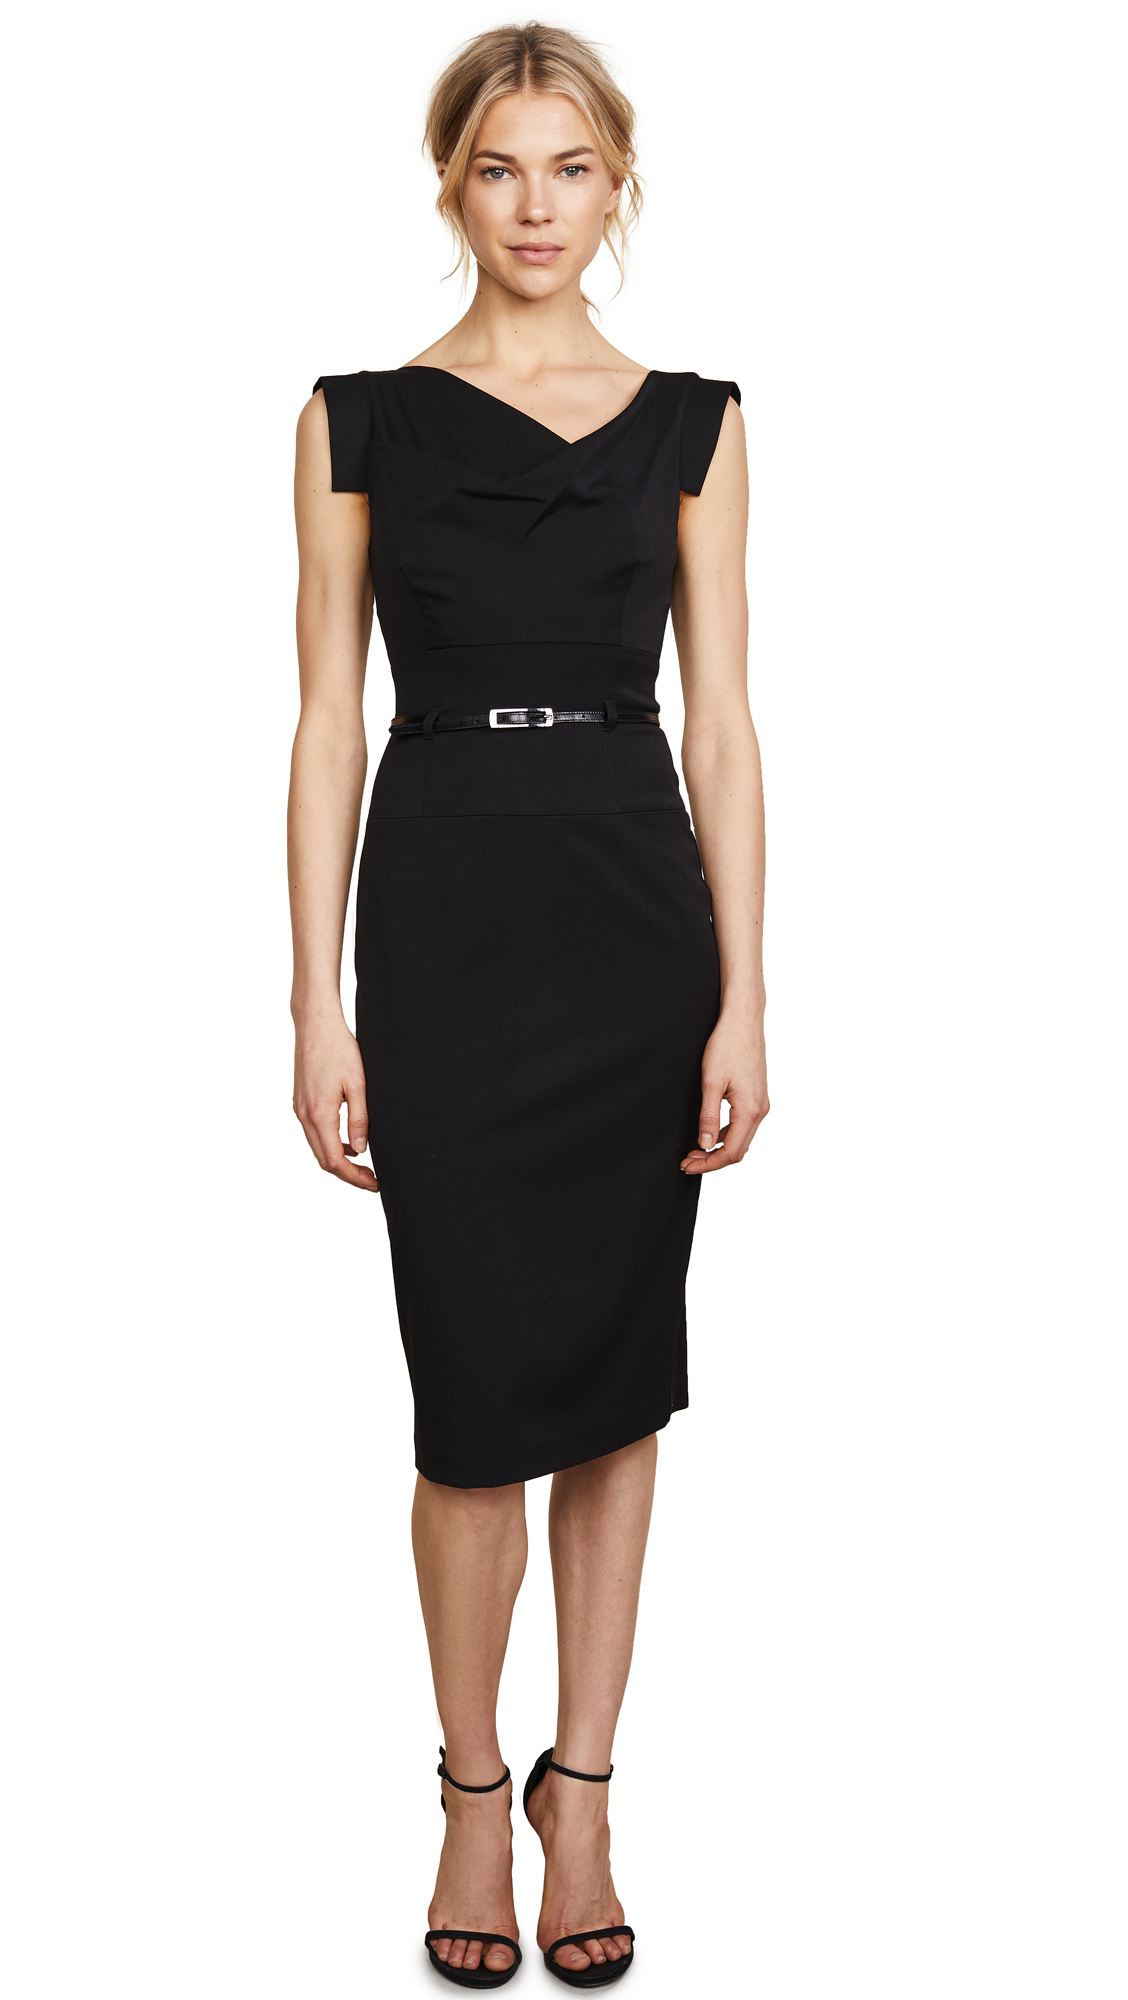 Black Halo Jackie O Belted Dress - Black